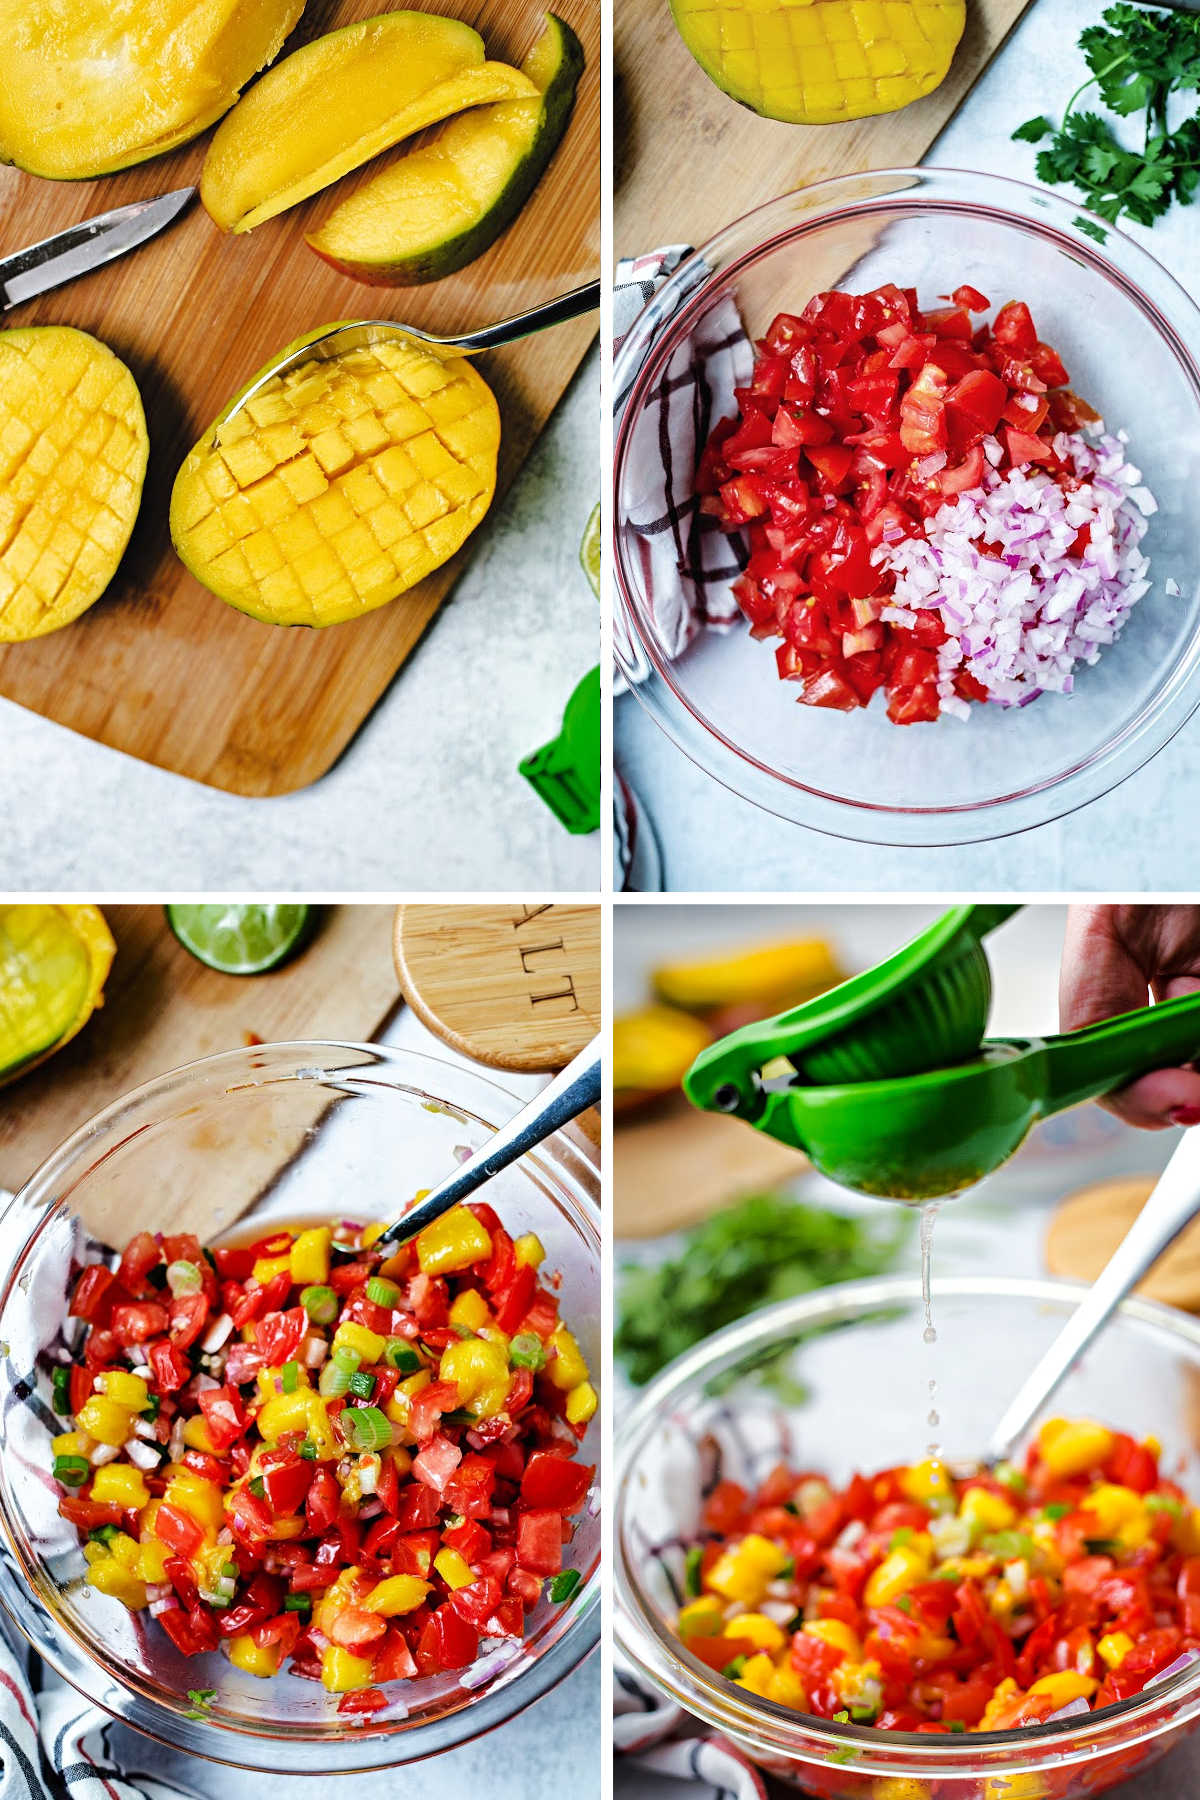 process steps for making mango tomato salsa: chop mango, dice tomatoes and onion, combine with garlic and peppers, add lime juice.